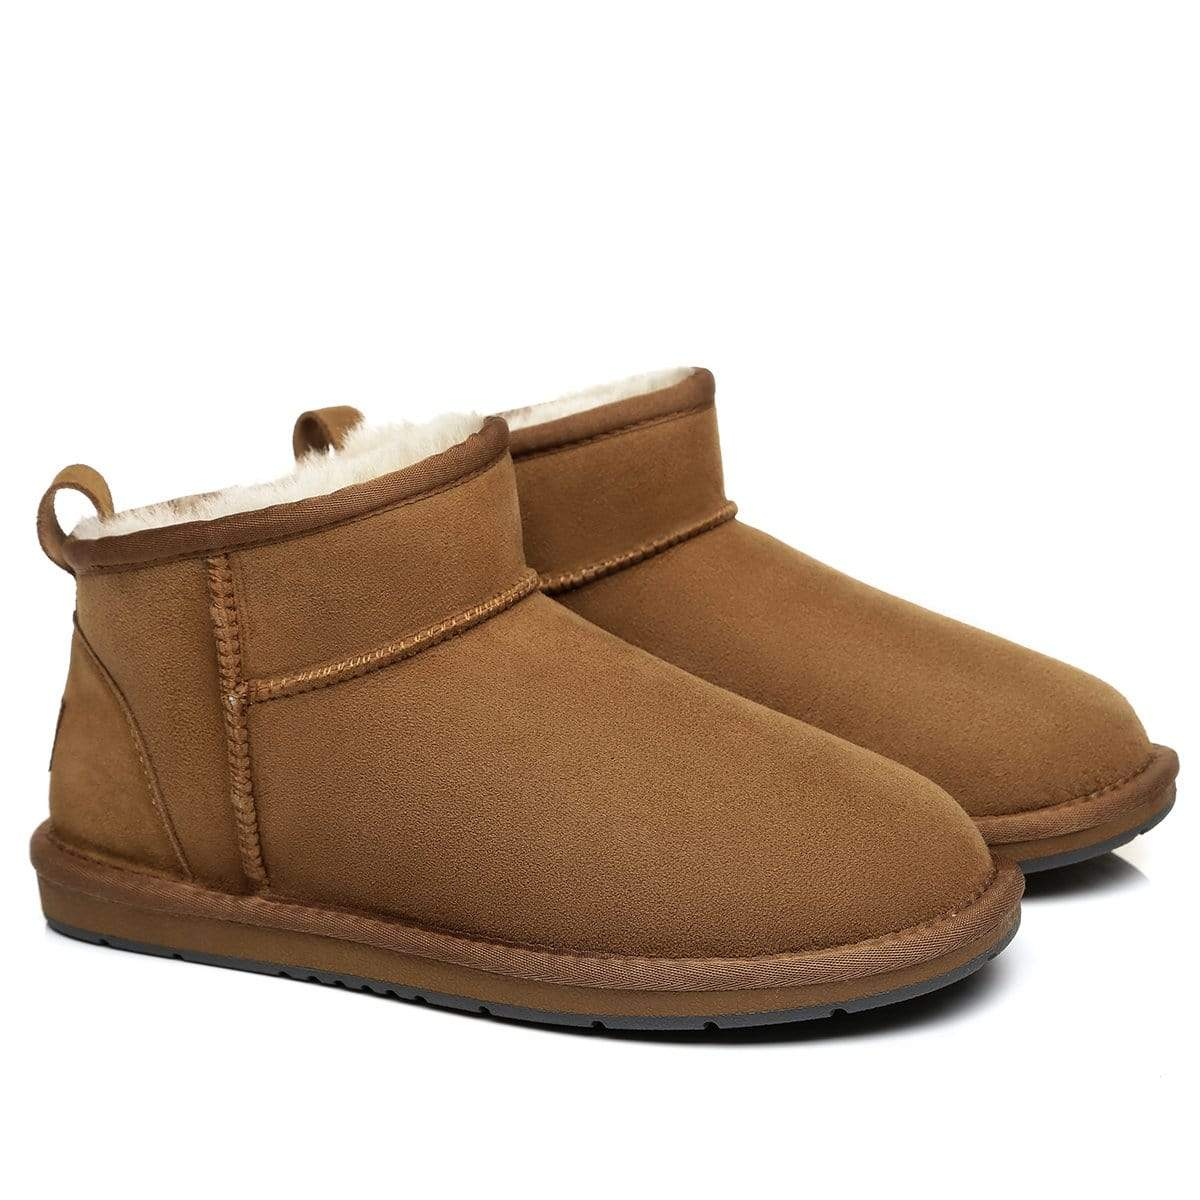 UGG Direct - Mini Ultra Boots - UGG Direct - Australia